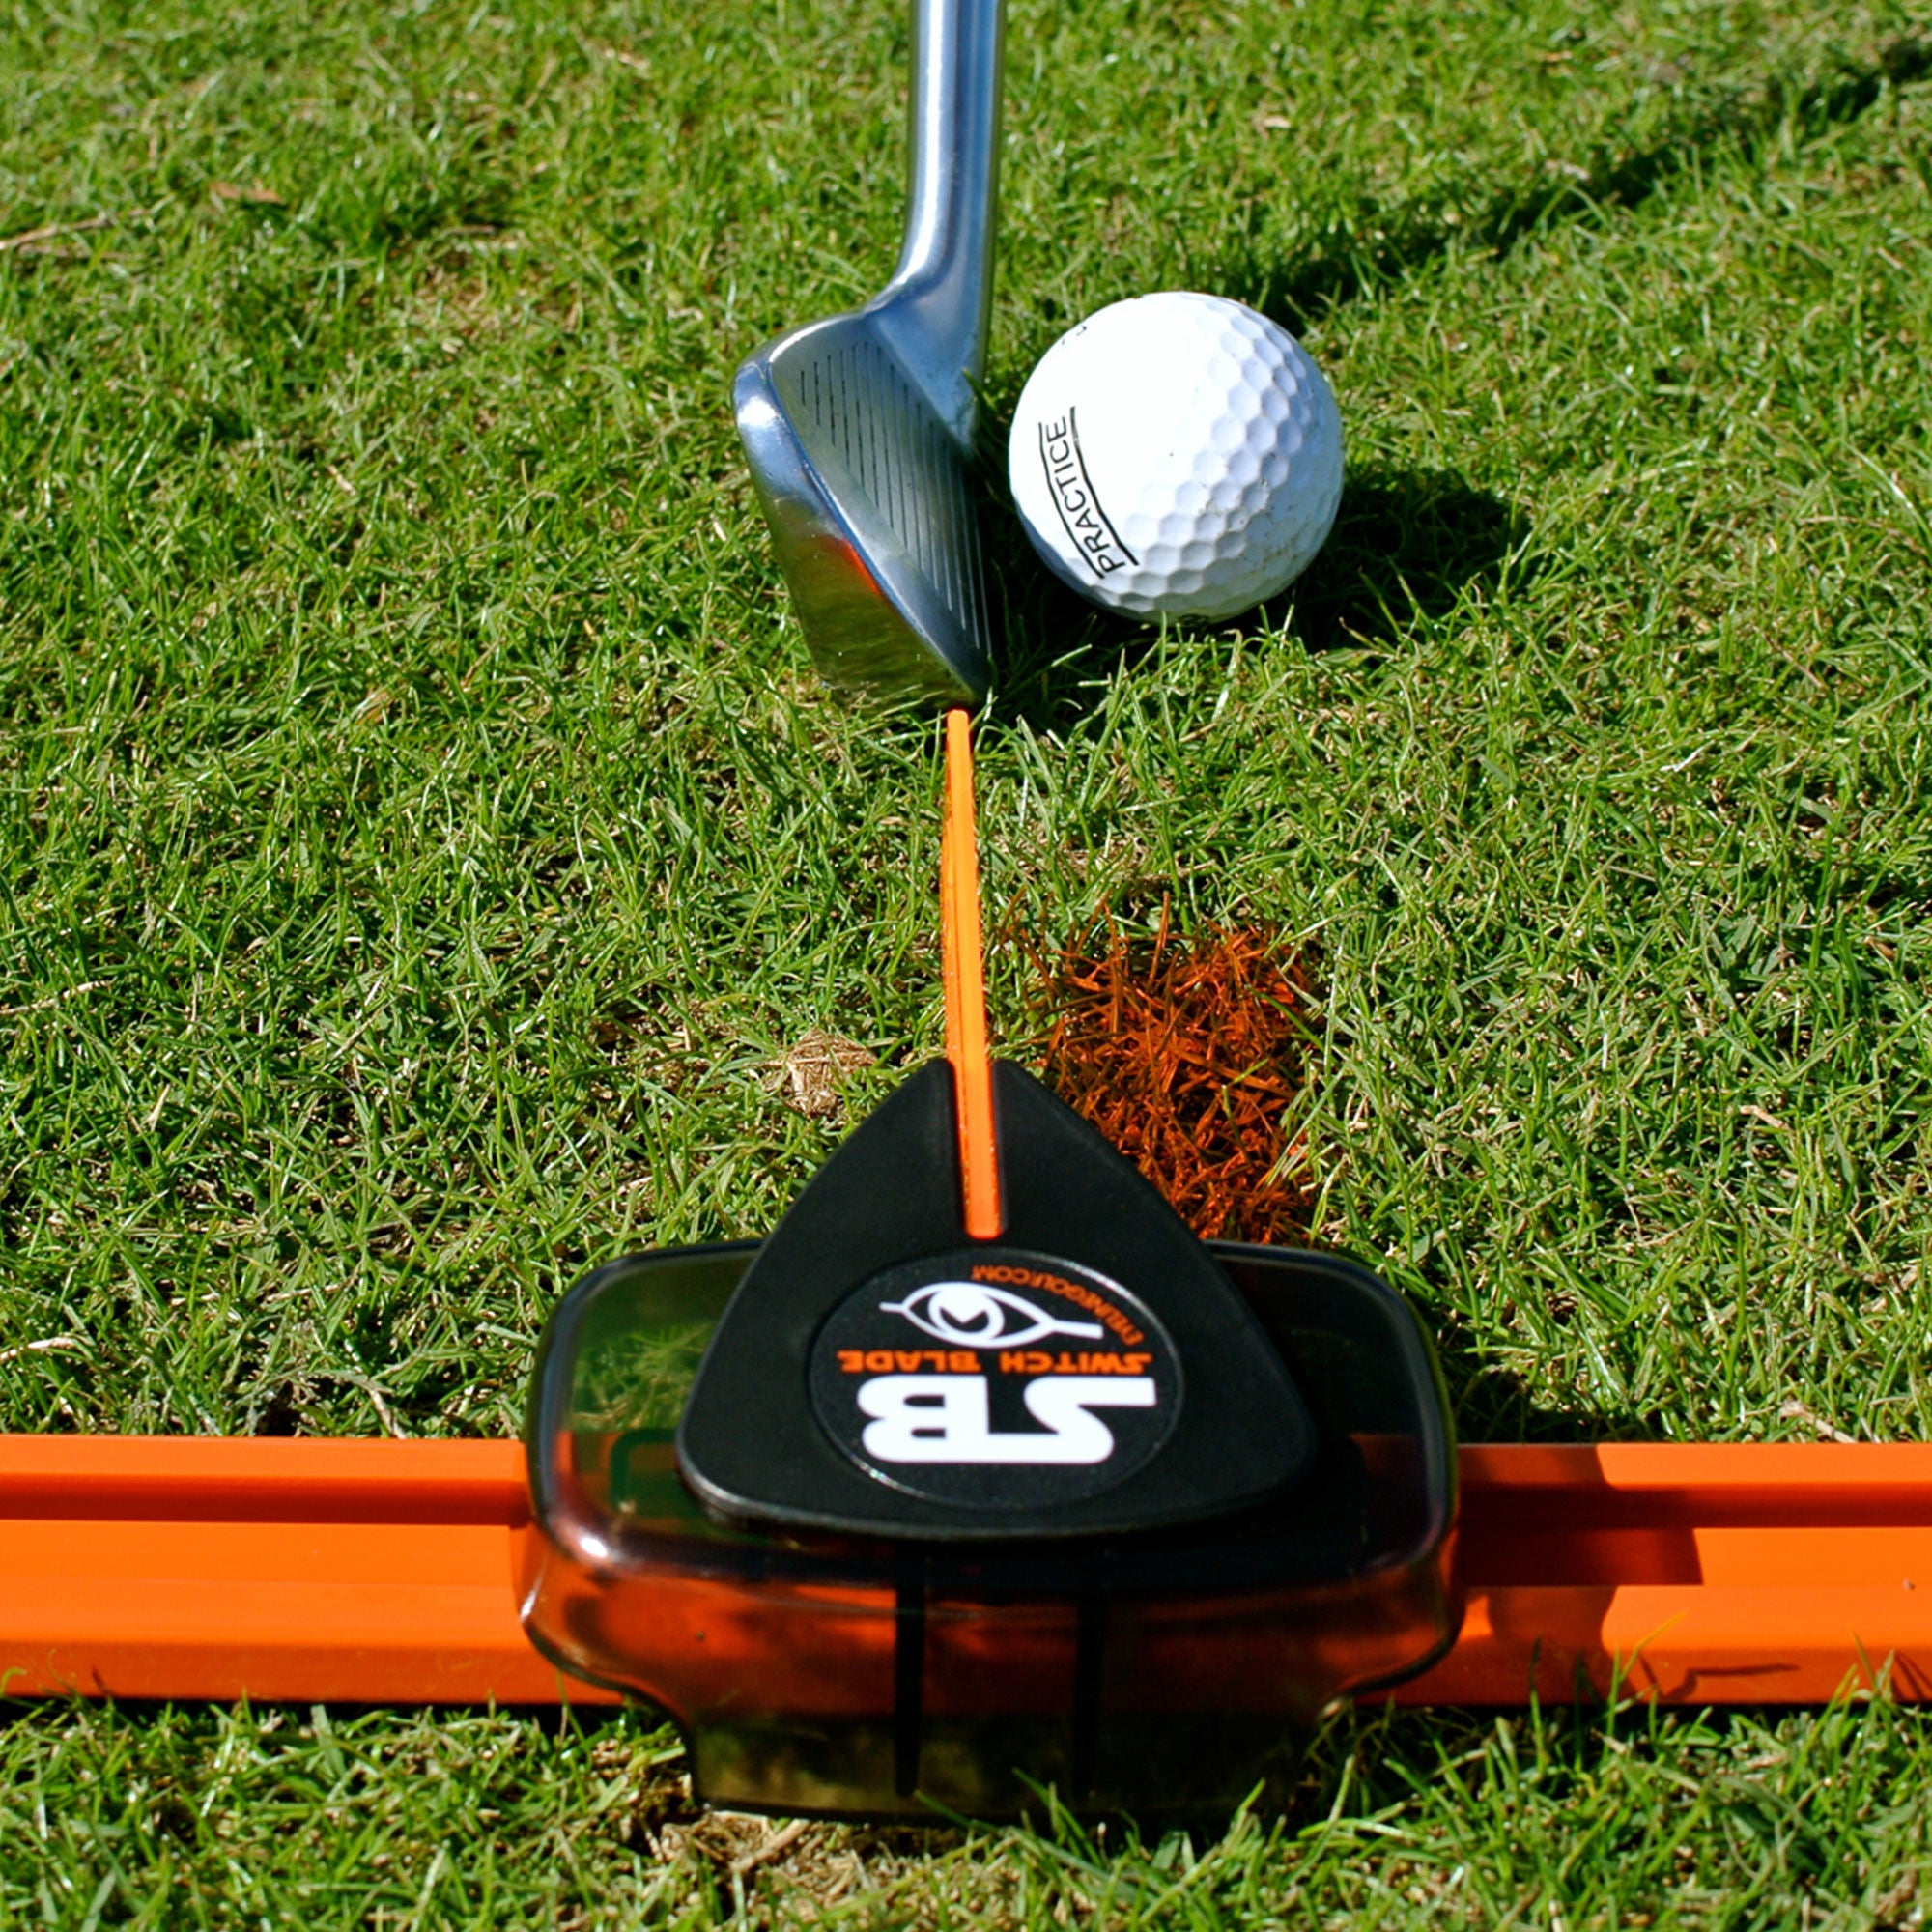 Eyeline Golf - Switchblade Face Alignment Tool